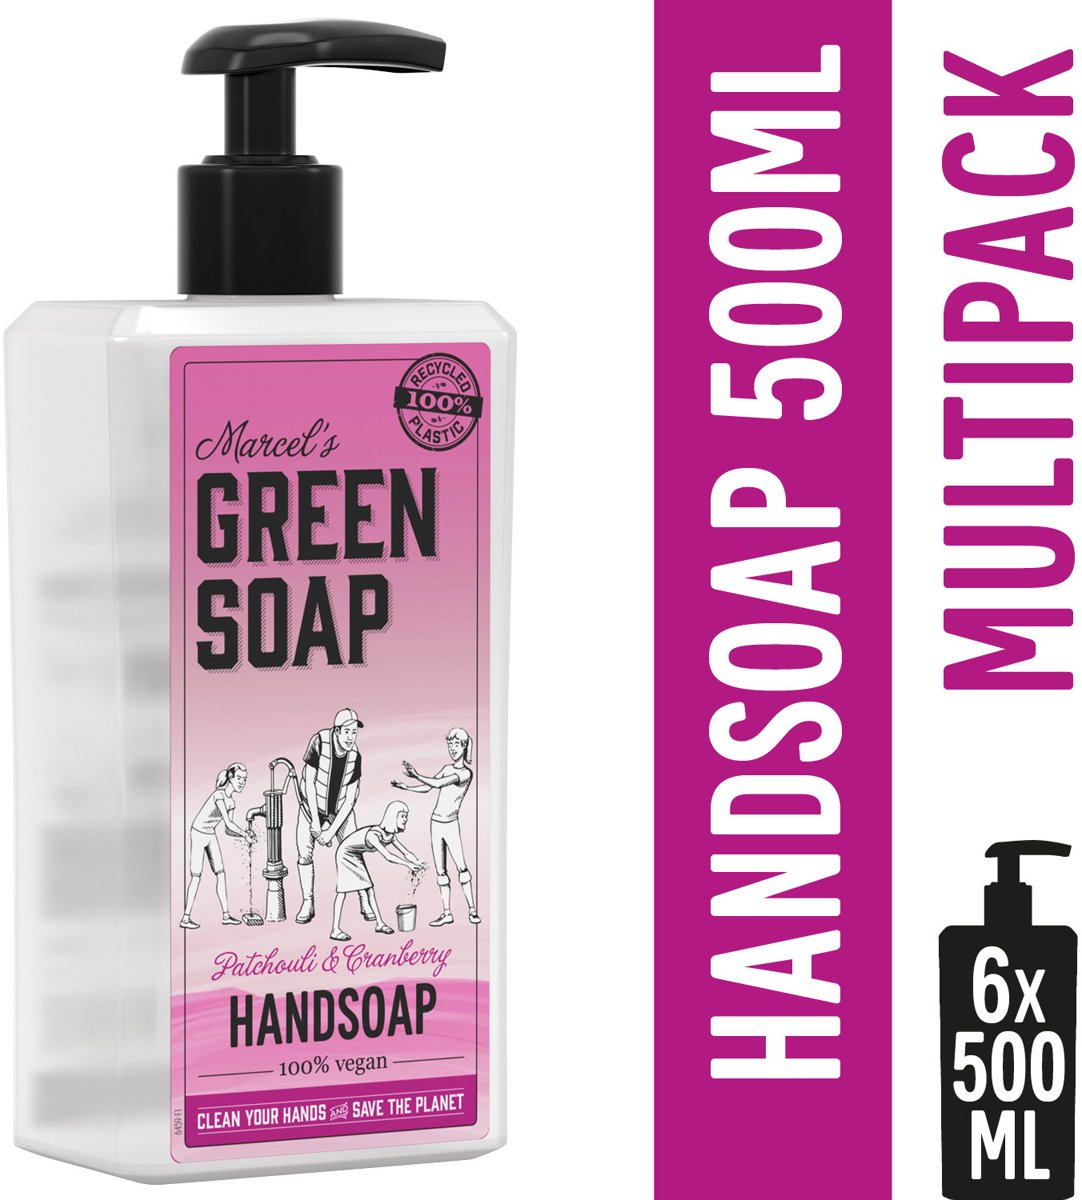 Marcels Green Soap Handzeep Patchouli & Cranberry - 500 ml. Doos a 6 flessen